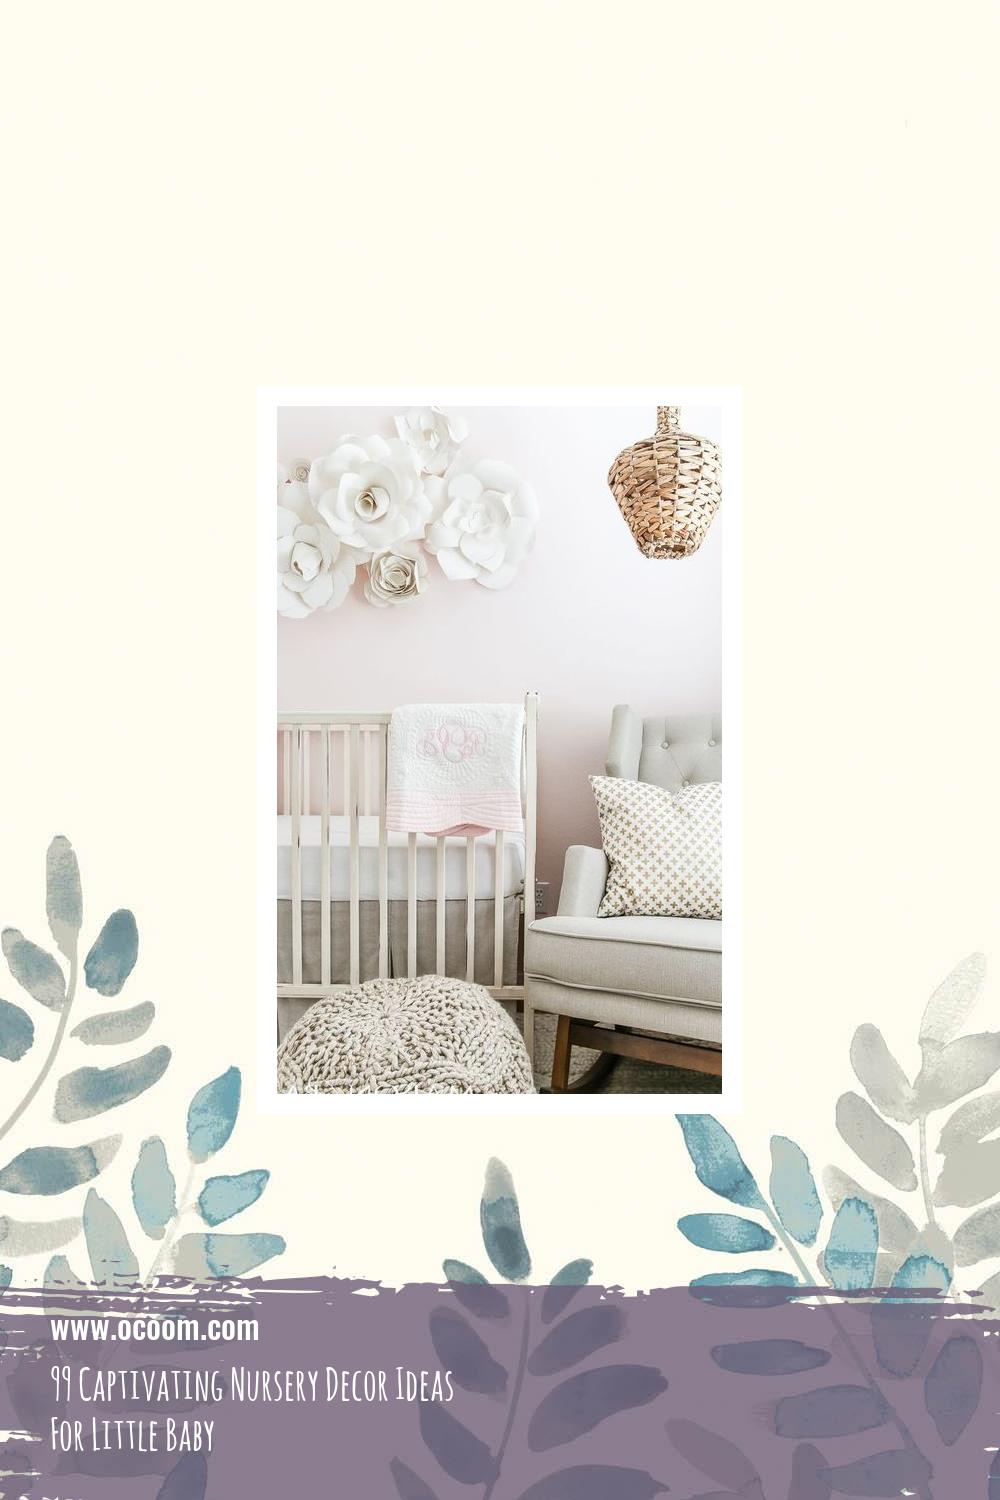 99 Captivating Nursery Decor Ideas For Little Baby 30